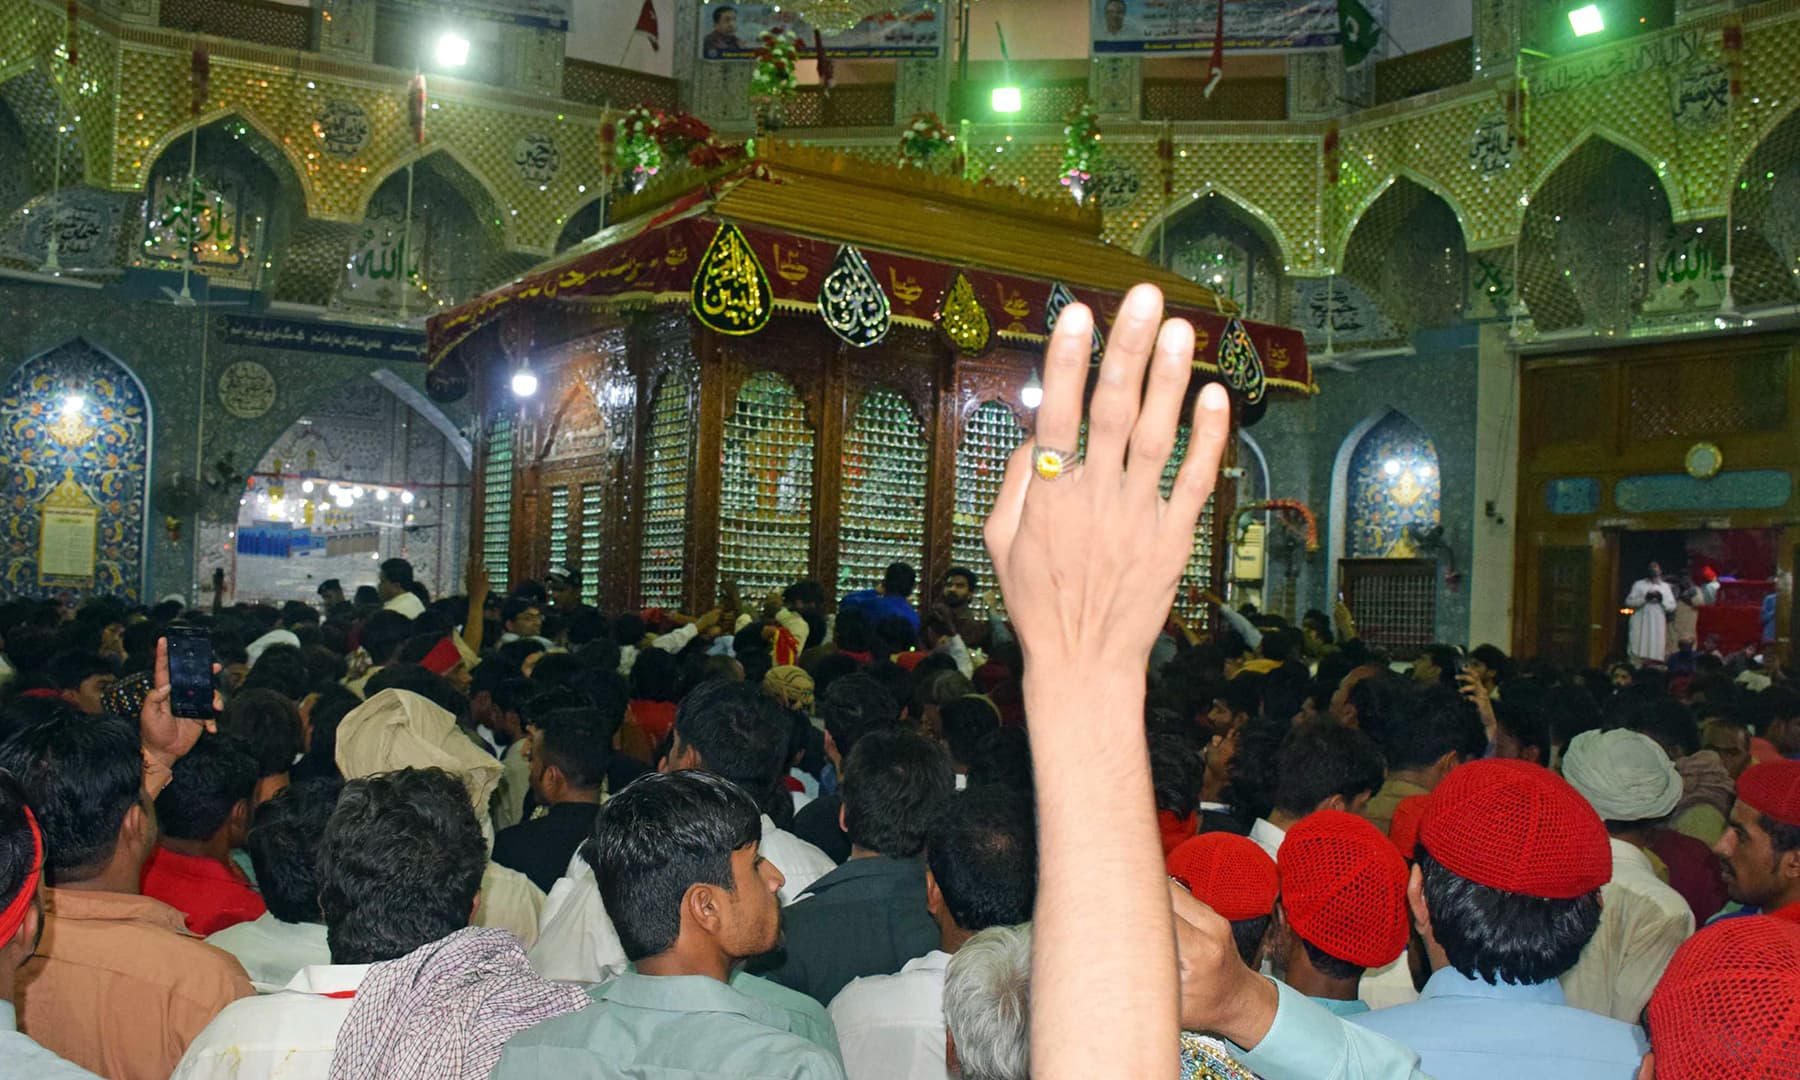 An inside view of Qalandar's shrine. Visitors have filled the space completely.